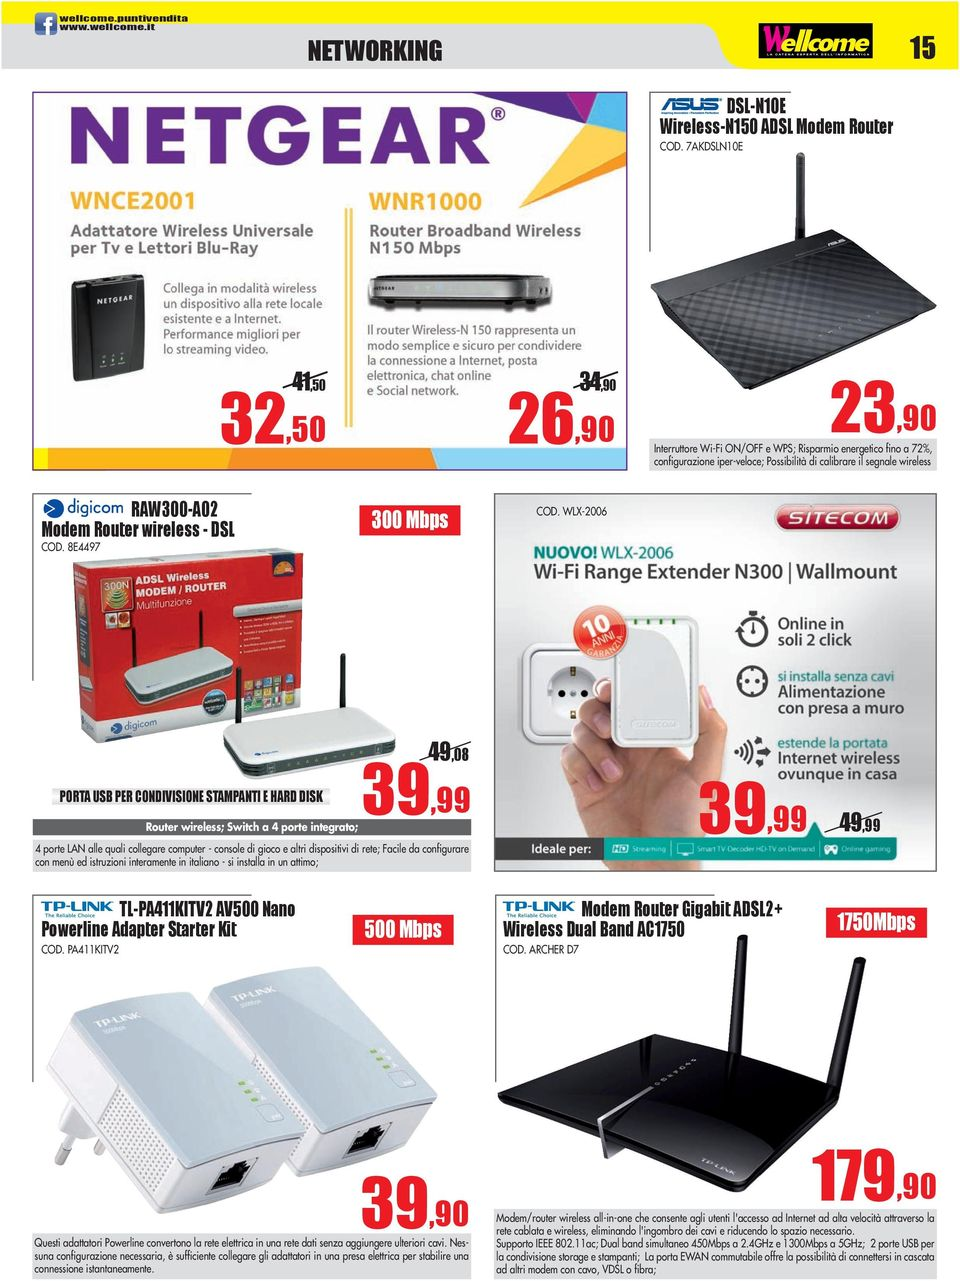 router wireless - dsl COD. 8E4497 300 mbps COD.